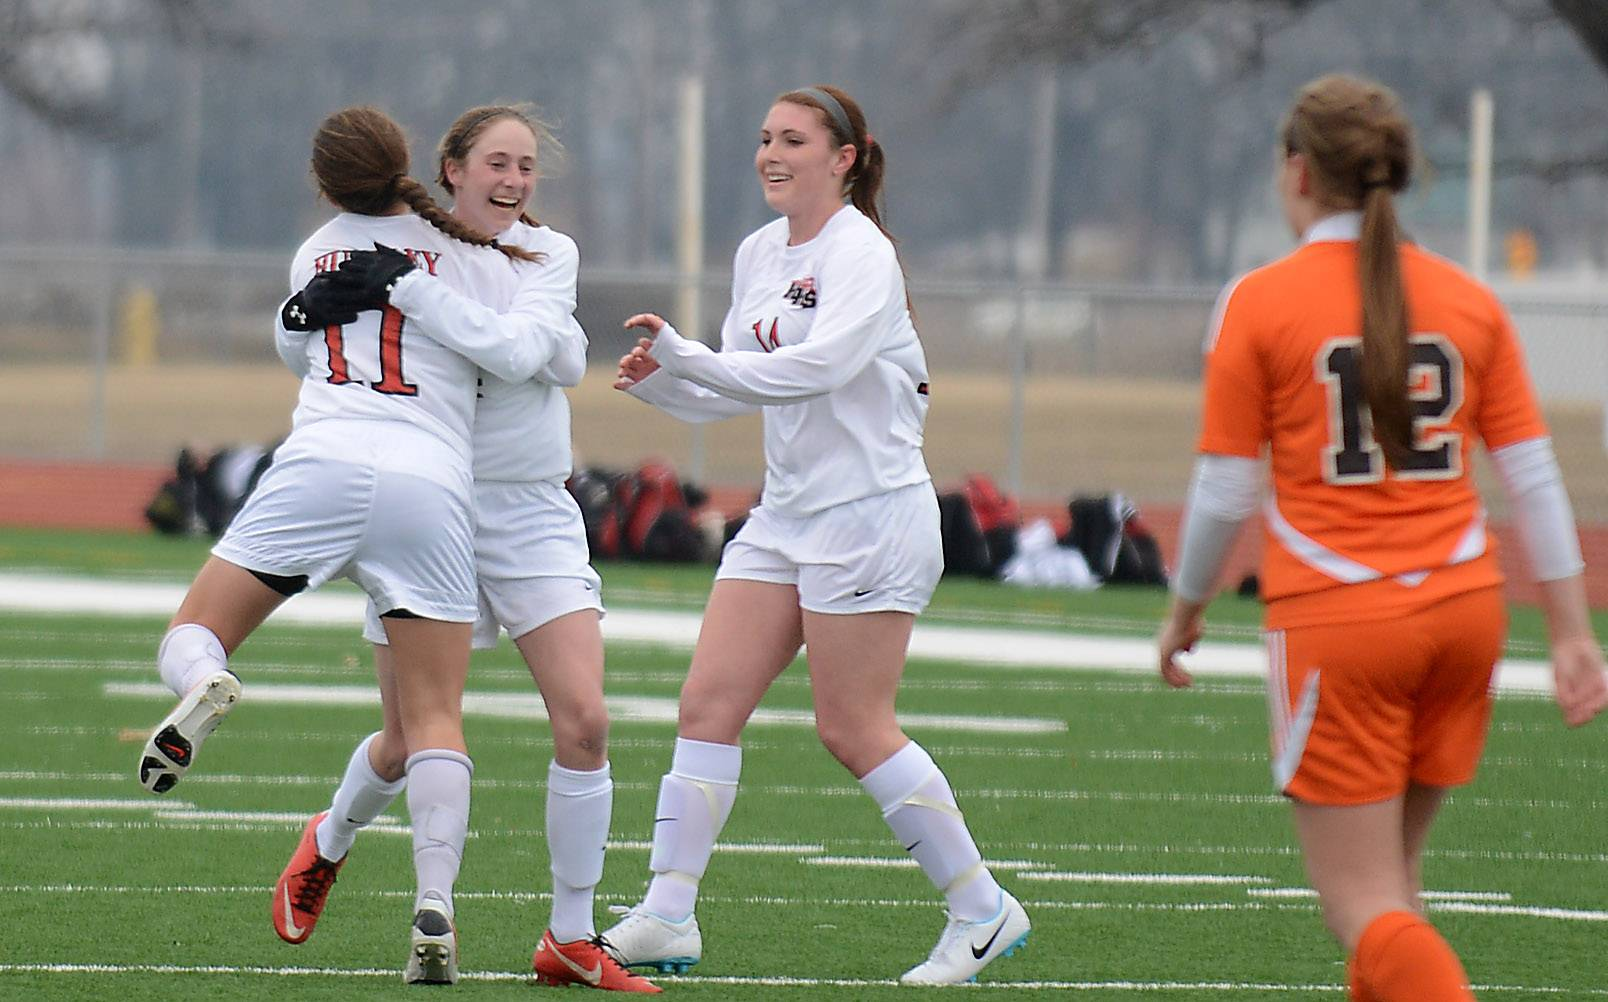 Huntley's Taryn Jakubowski (11) jumps into the arms of teammate Katie Costantino after scoring on long strike in the first half against Hersey during Friday's game in Huntley.